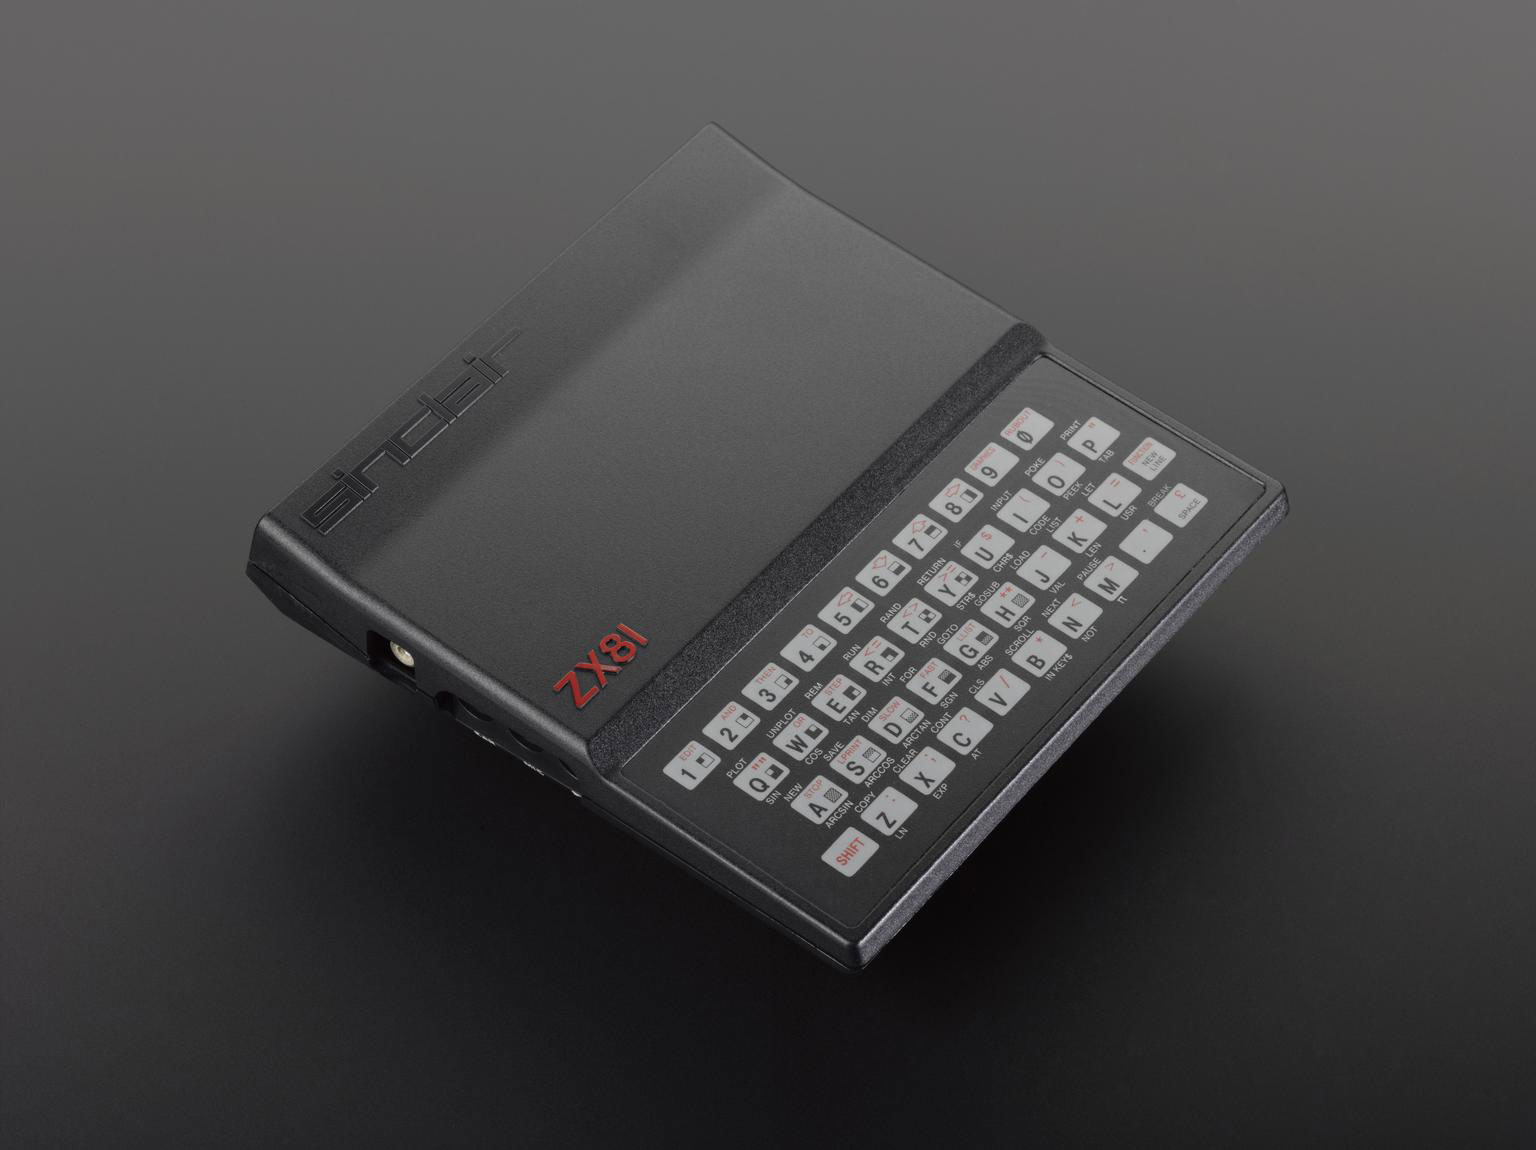 photograph of sinclair ZX81 computer - a black box with a keyboard